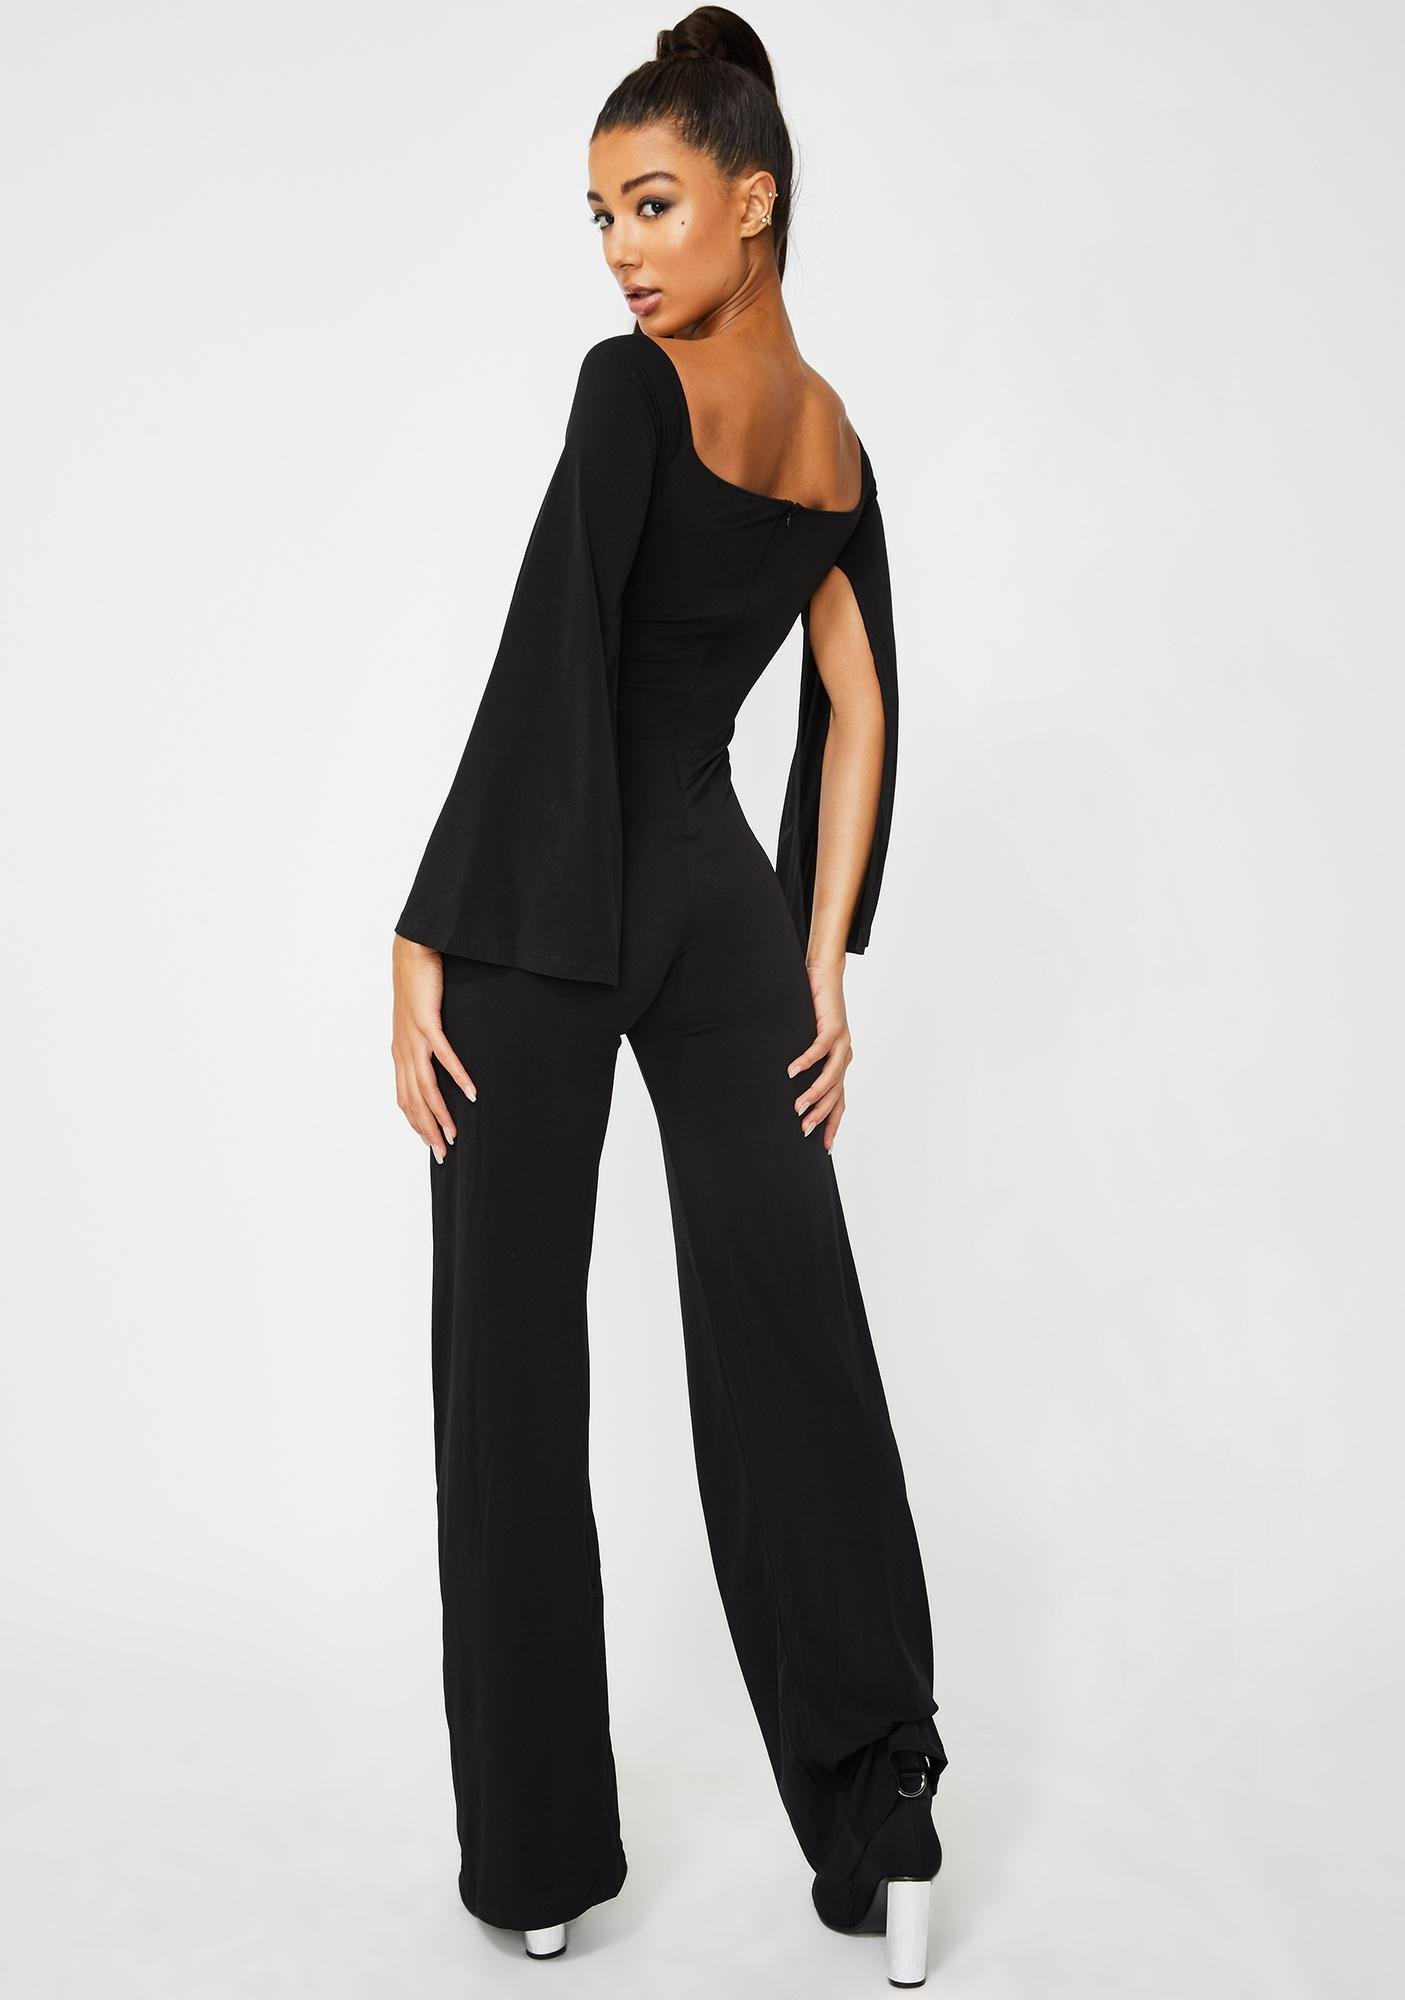 Kiki Riki Dark Decisions Cutout Jumpsuit